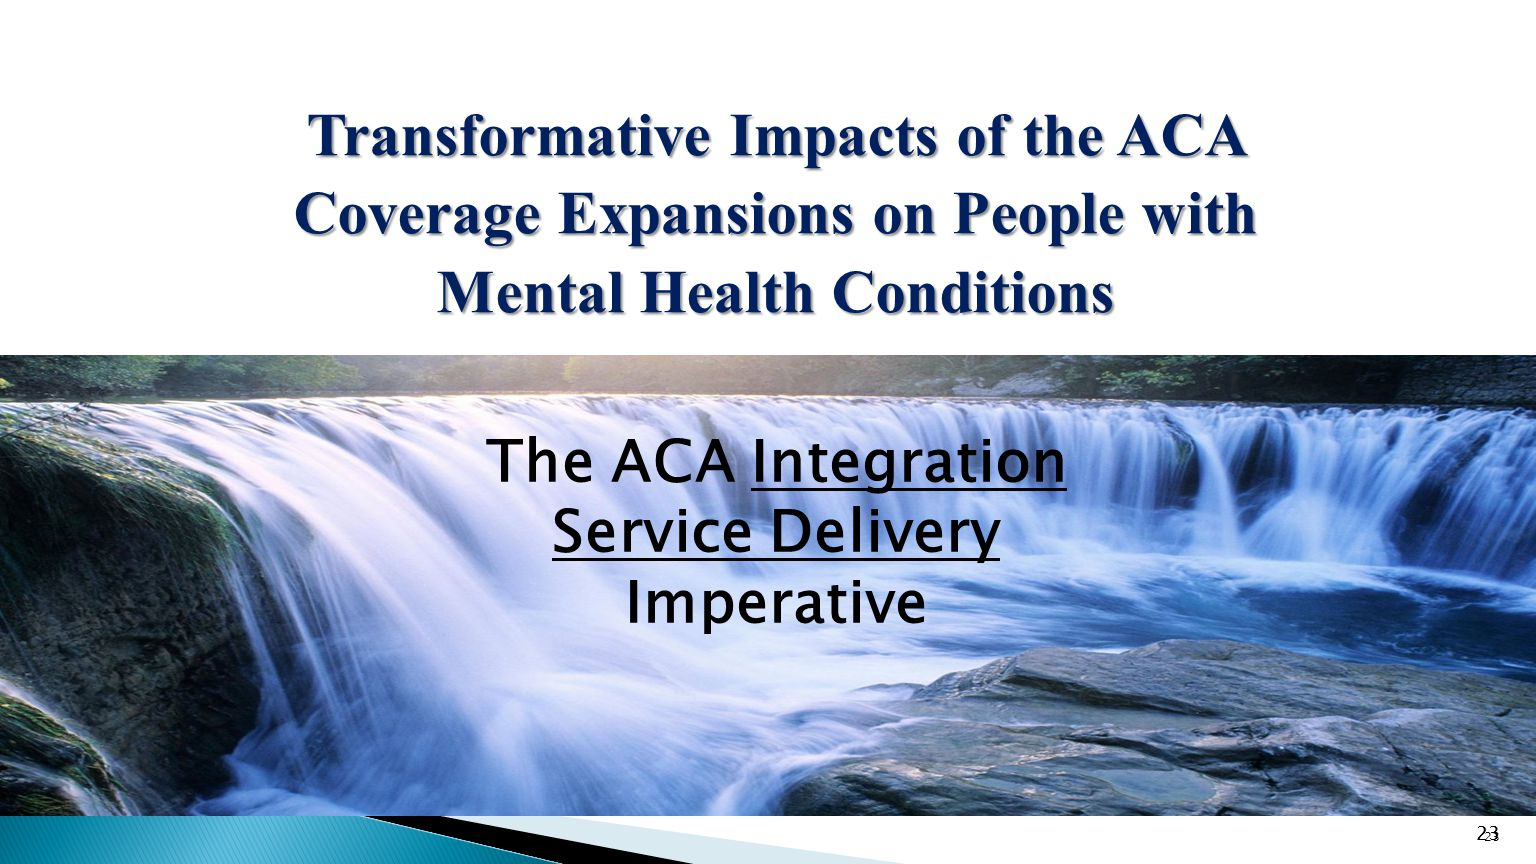 23 Transformative Impacts of the ACA Coverage Expansions on People with Mental Health Conditions 23 The ACA Integration Service Delivery Imperative